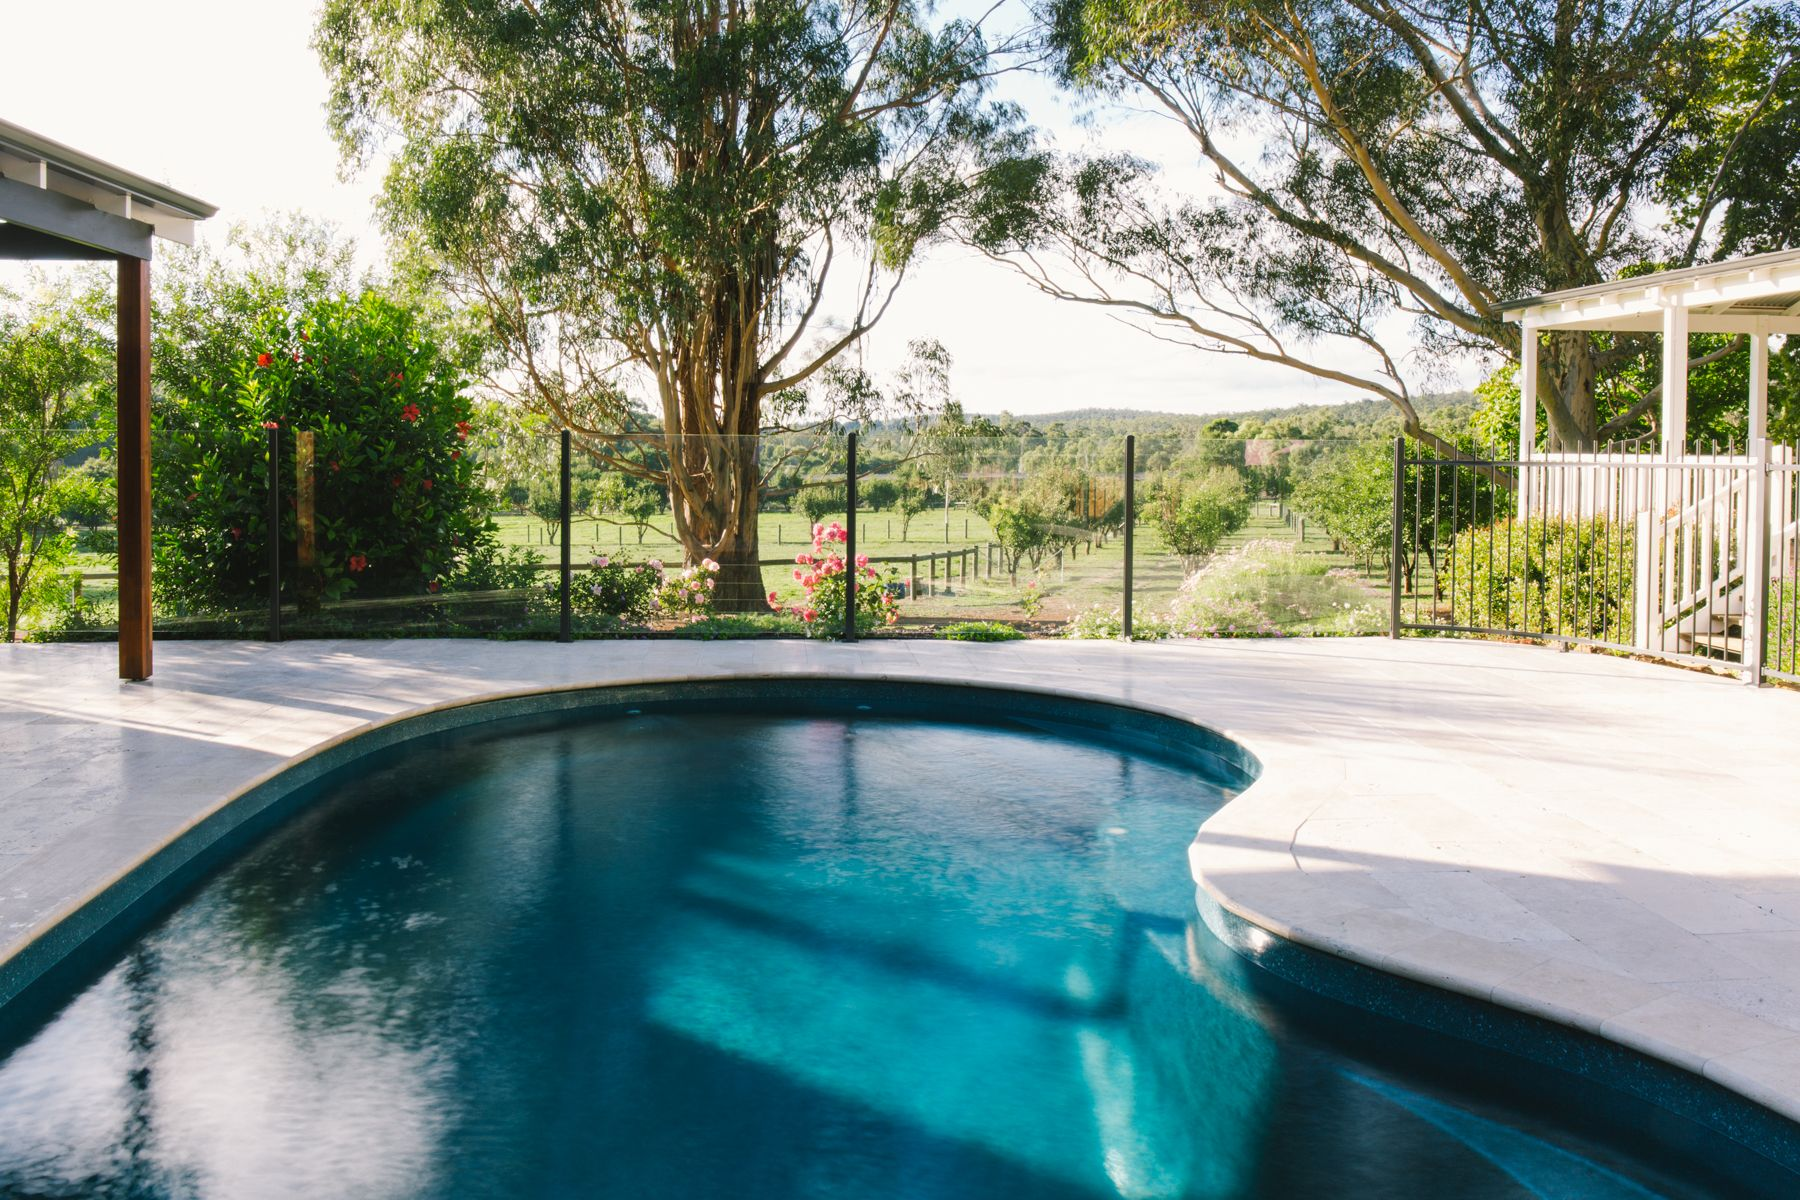 Kidney Or Jellybean Shaped Pools Are The Perfect Shape For An Organic And Rustic Backyard In Deep Blue Aqua Colour Against The Green Pool Spa Pool Pool Colors